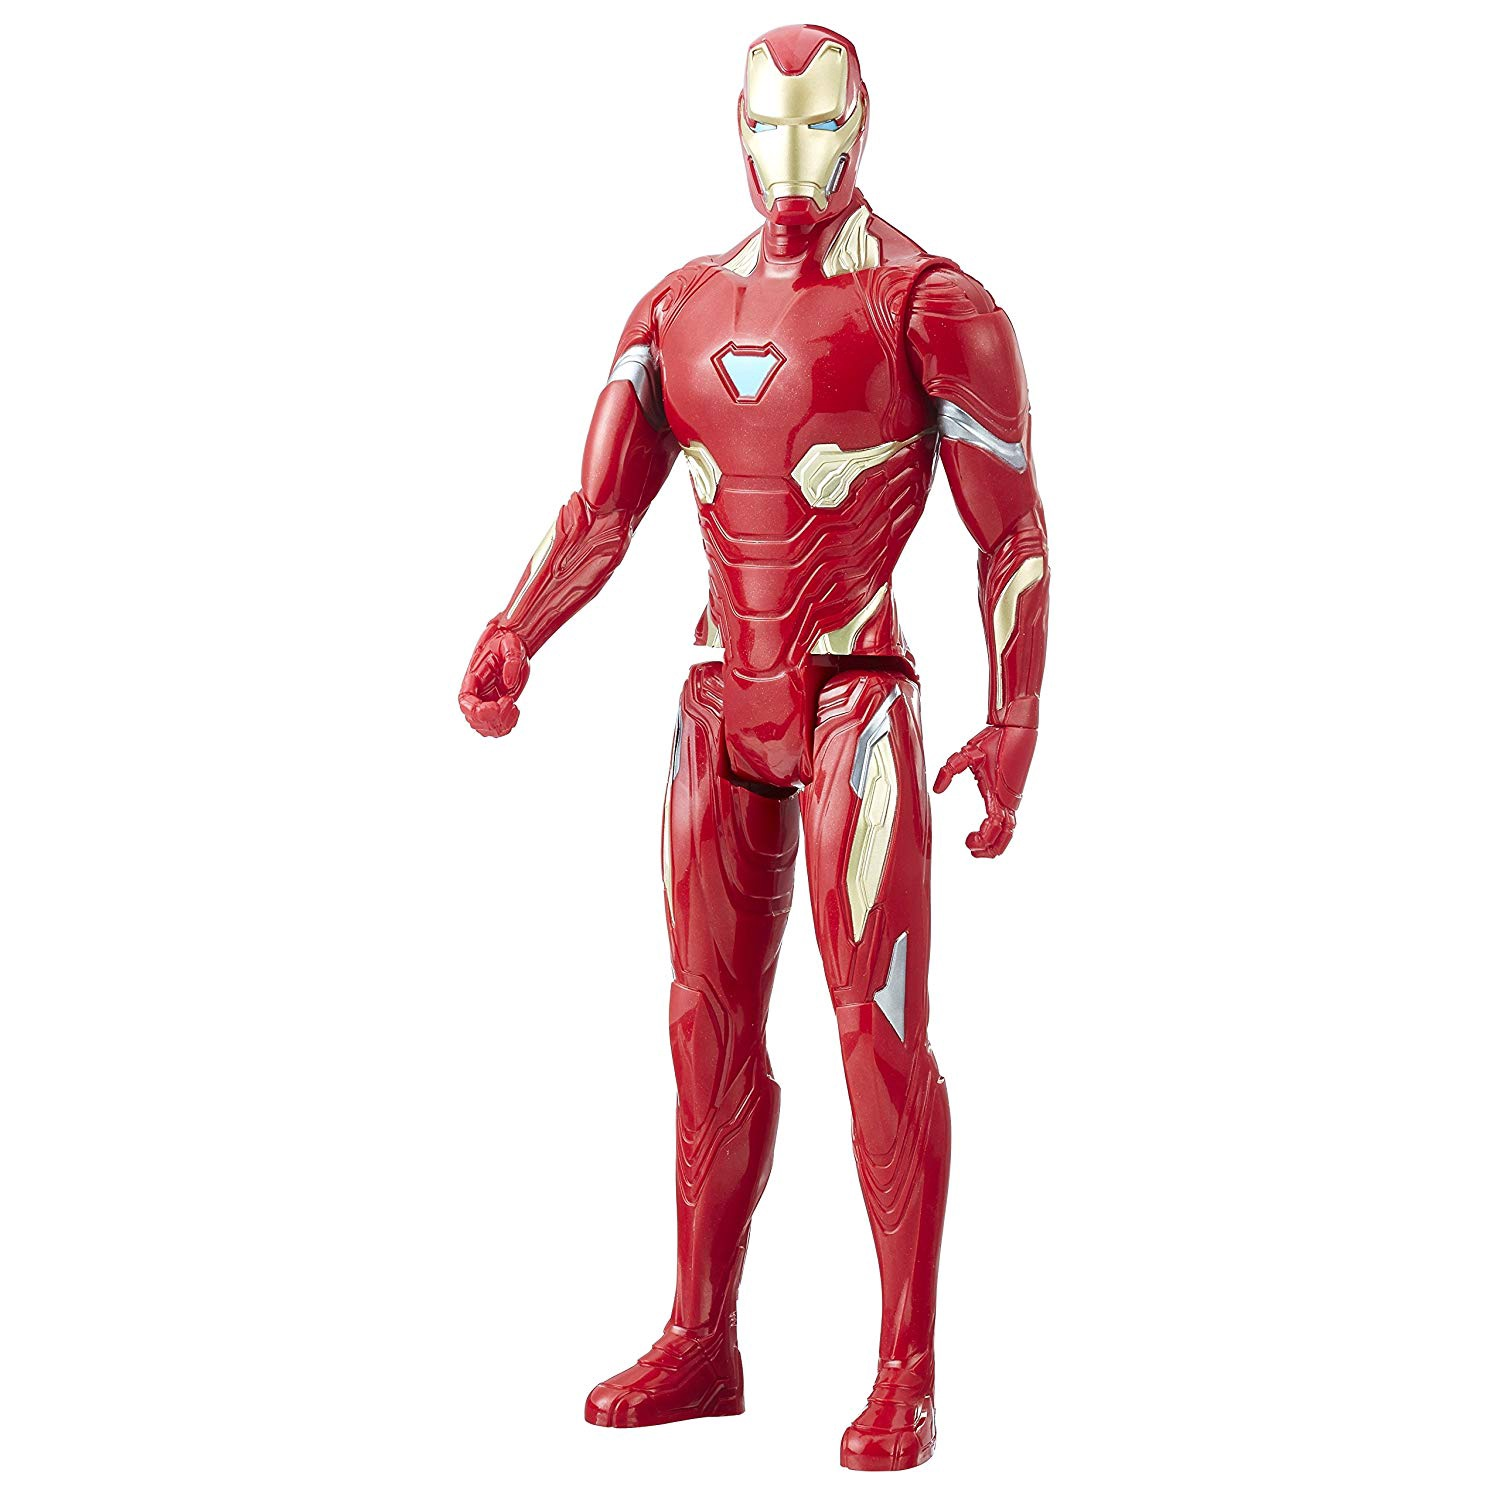 AVENGERS TITAN HERO SERIES IRON MAN